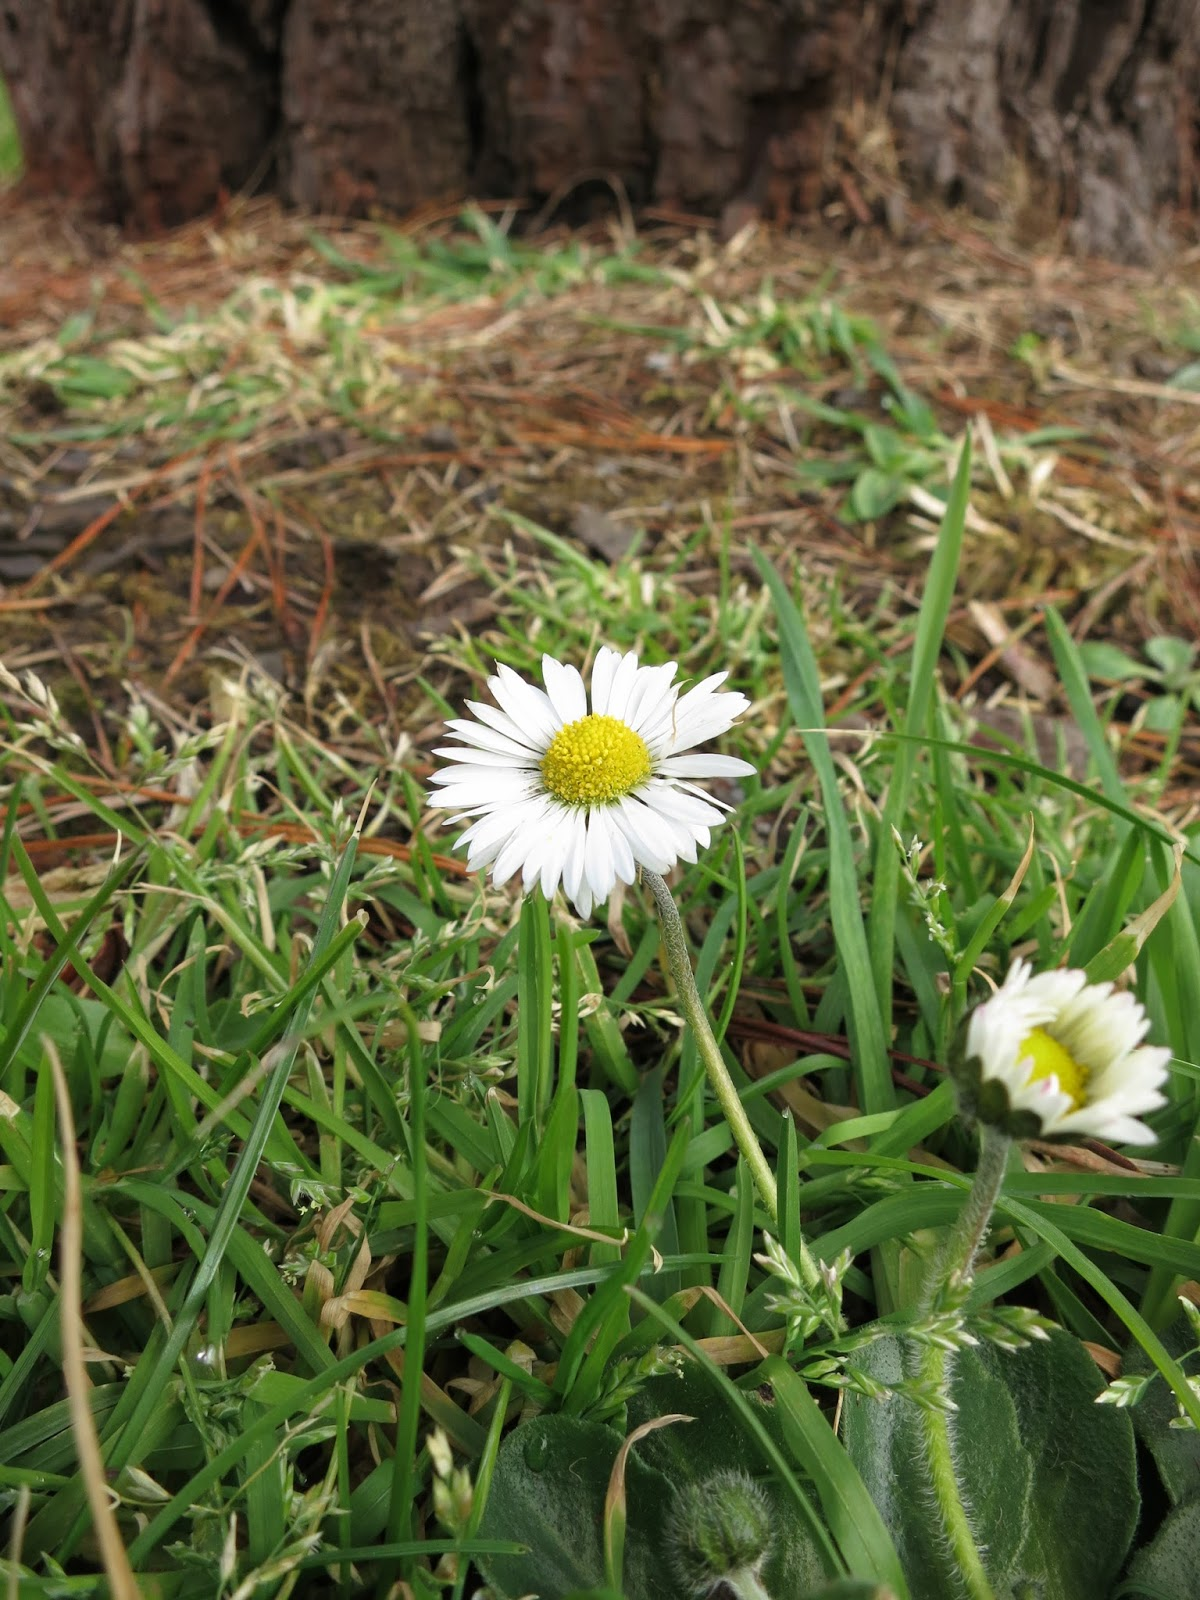 Daisies in grass near tree